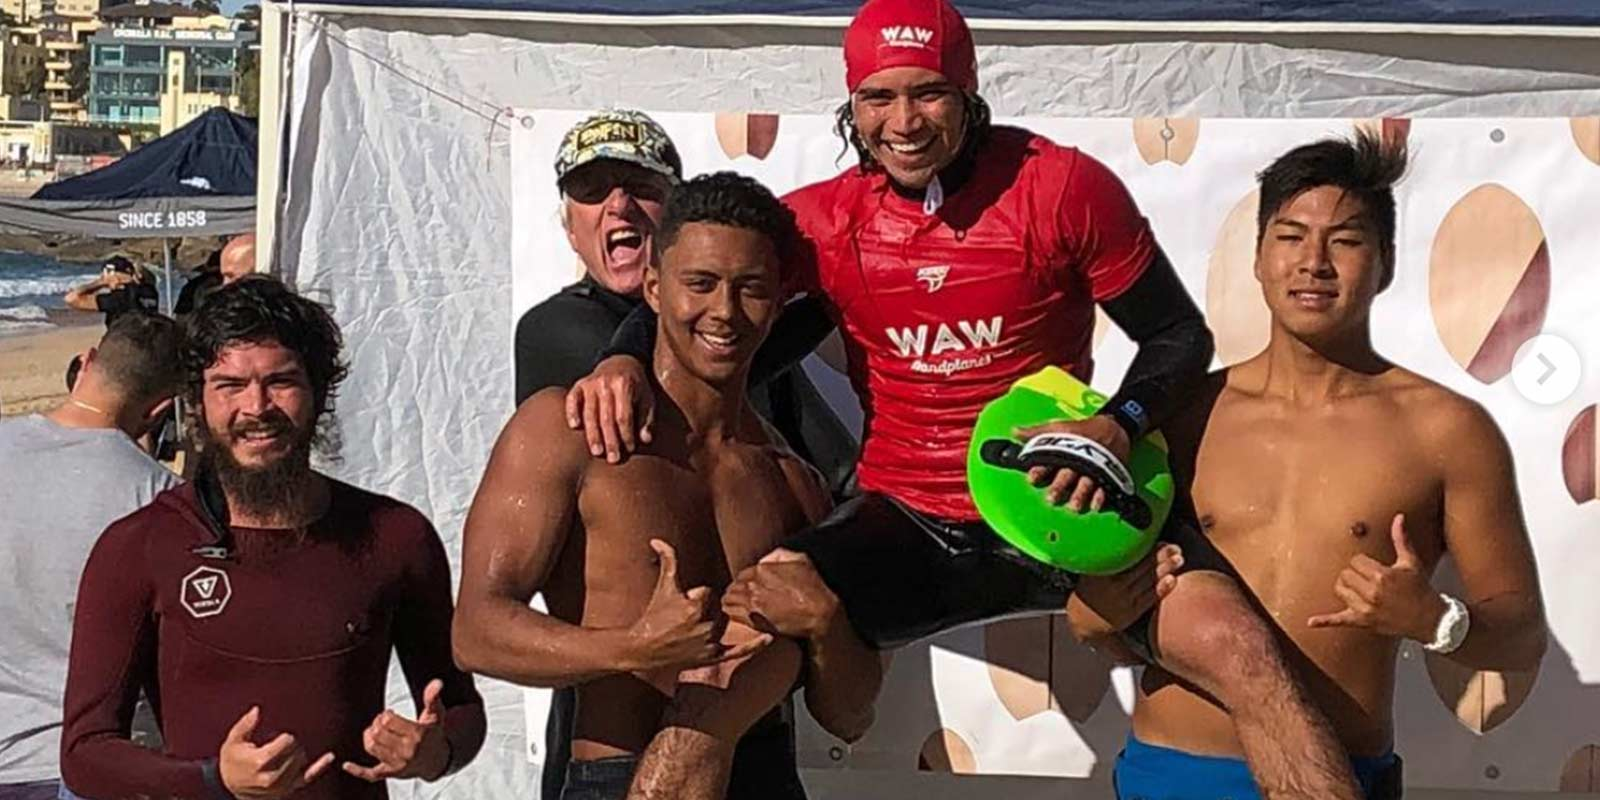 Whomp Off Australia Team Bodysurfing & Handboarding Competition Recap